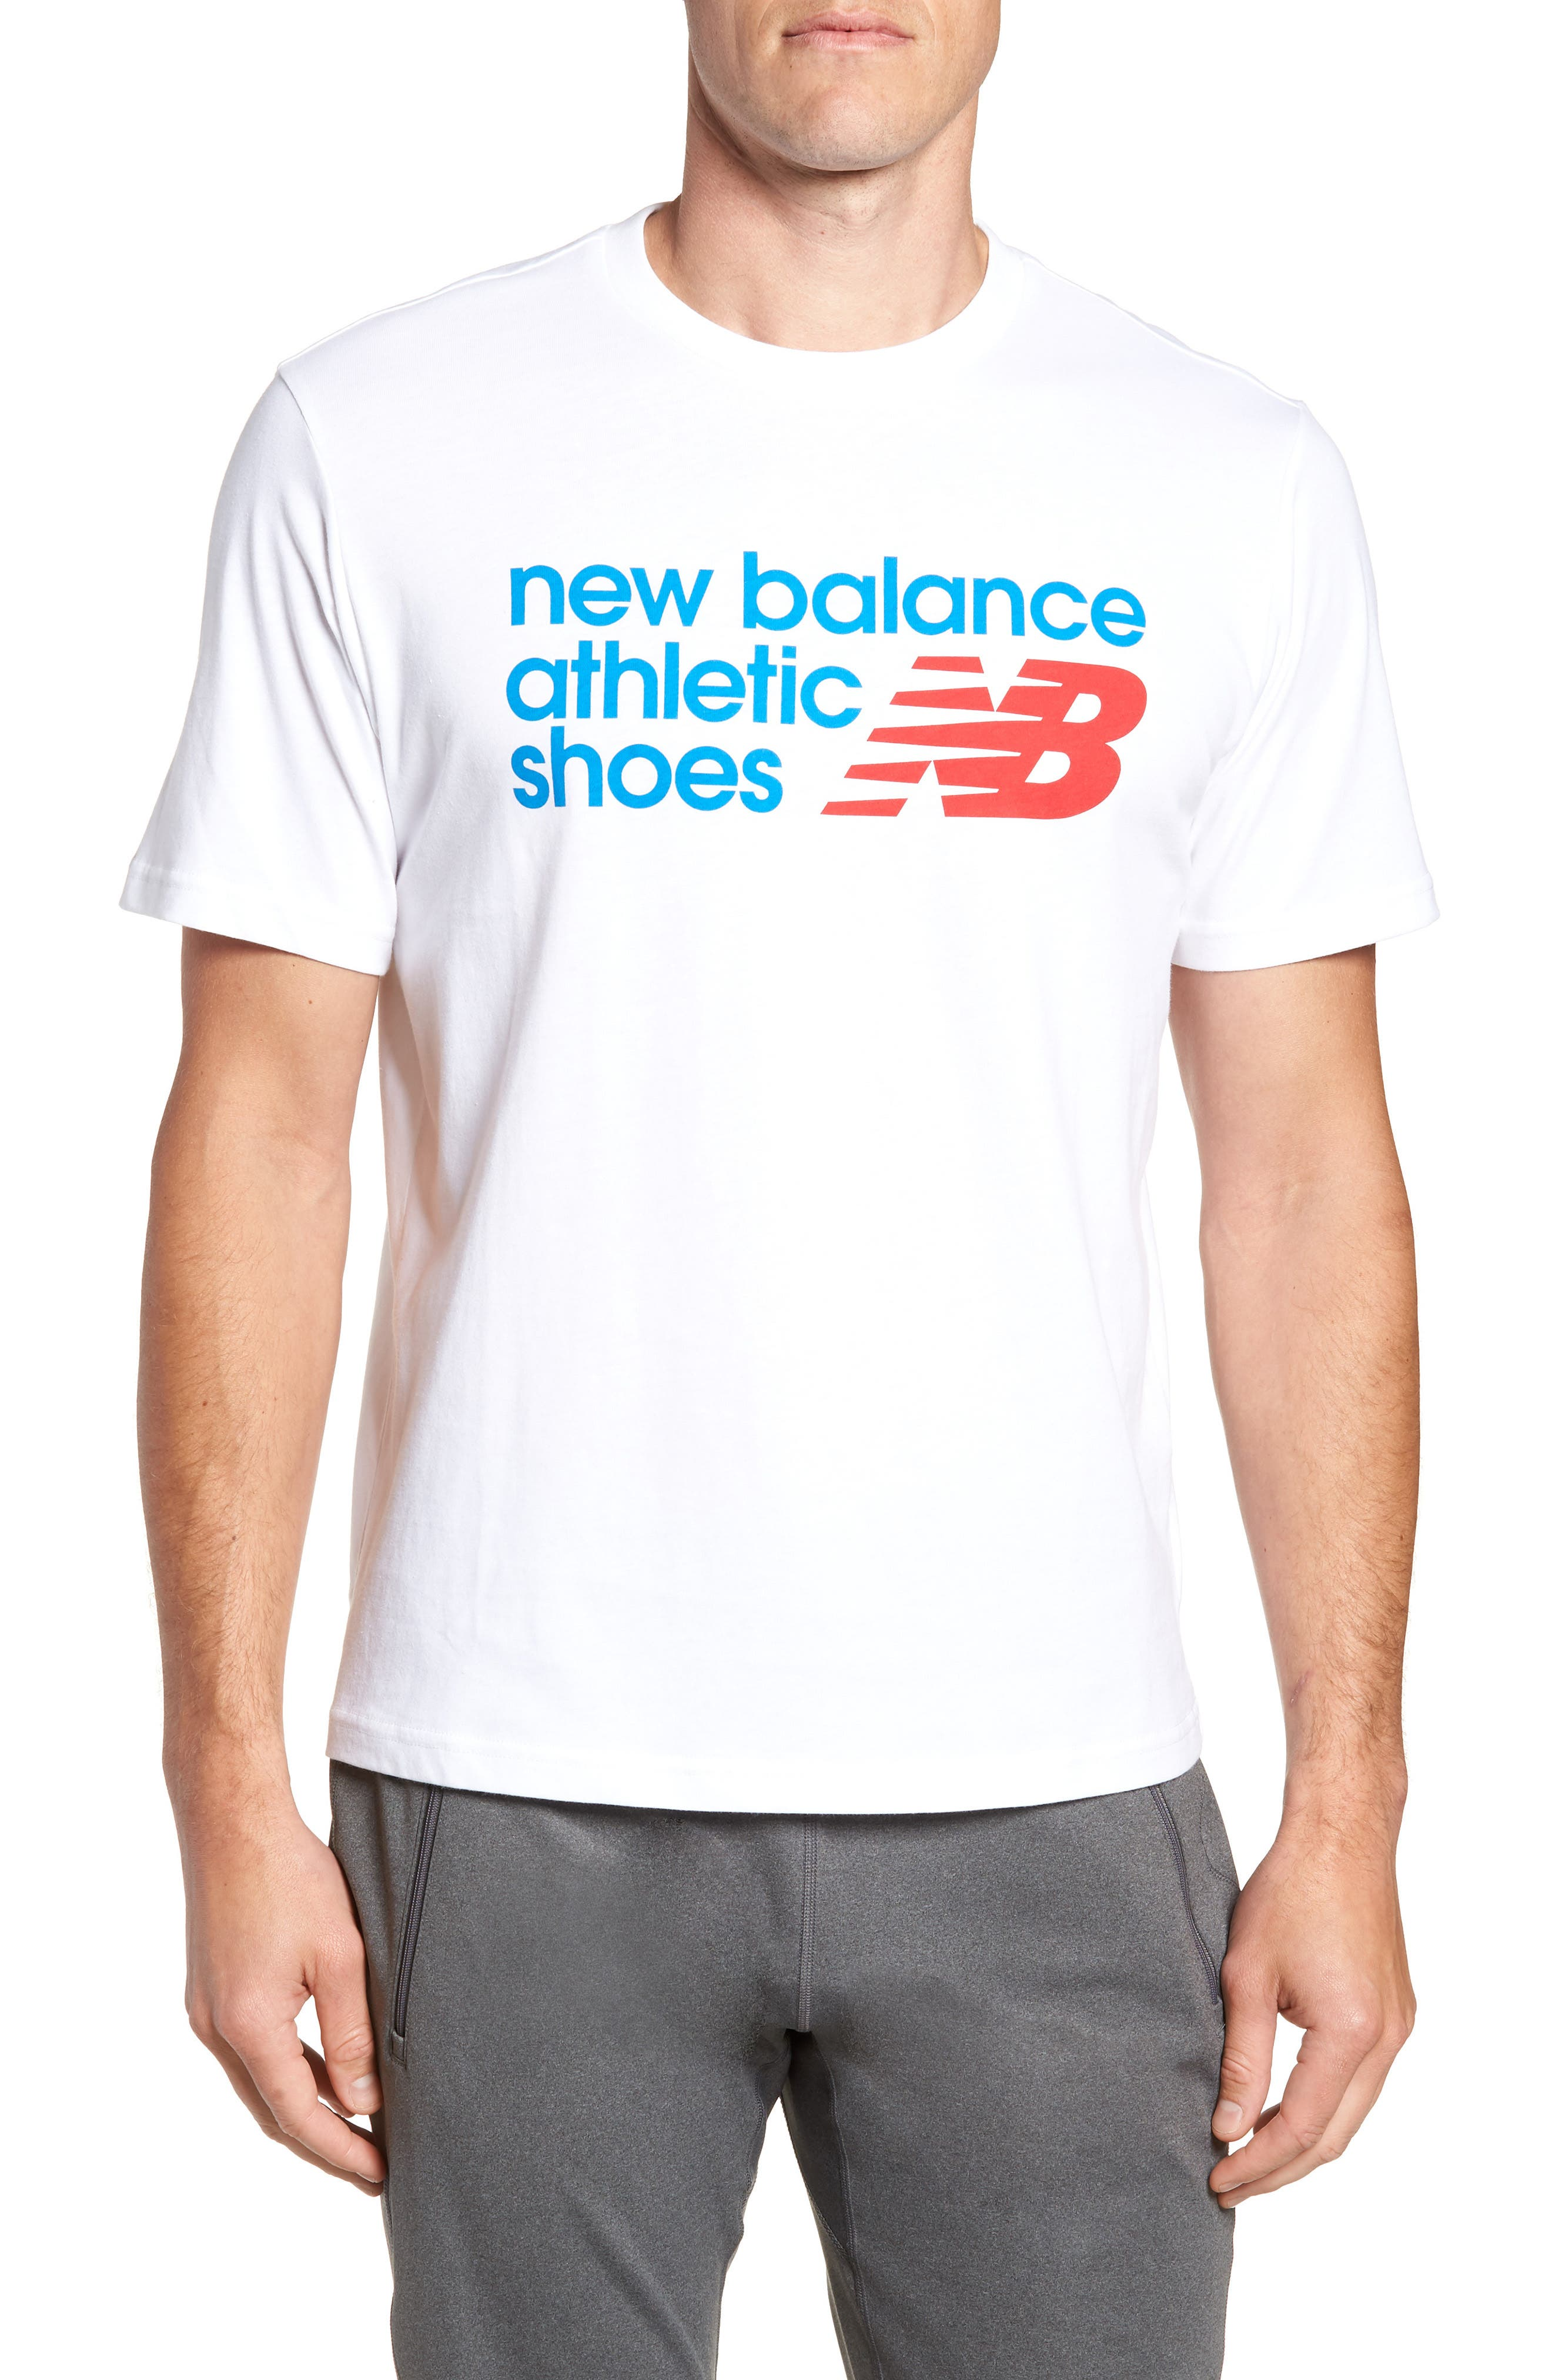 New Balance Nb Shoe Box Graphic T-Shirt, White